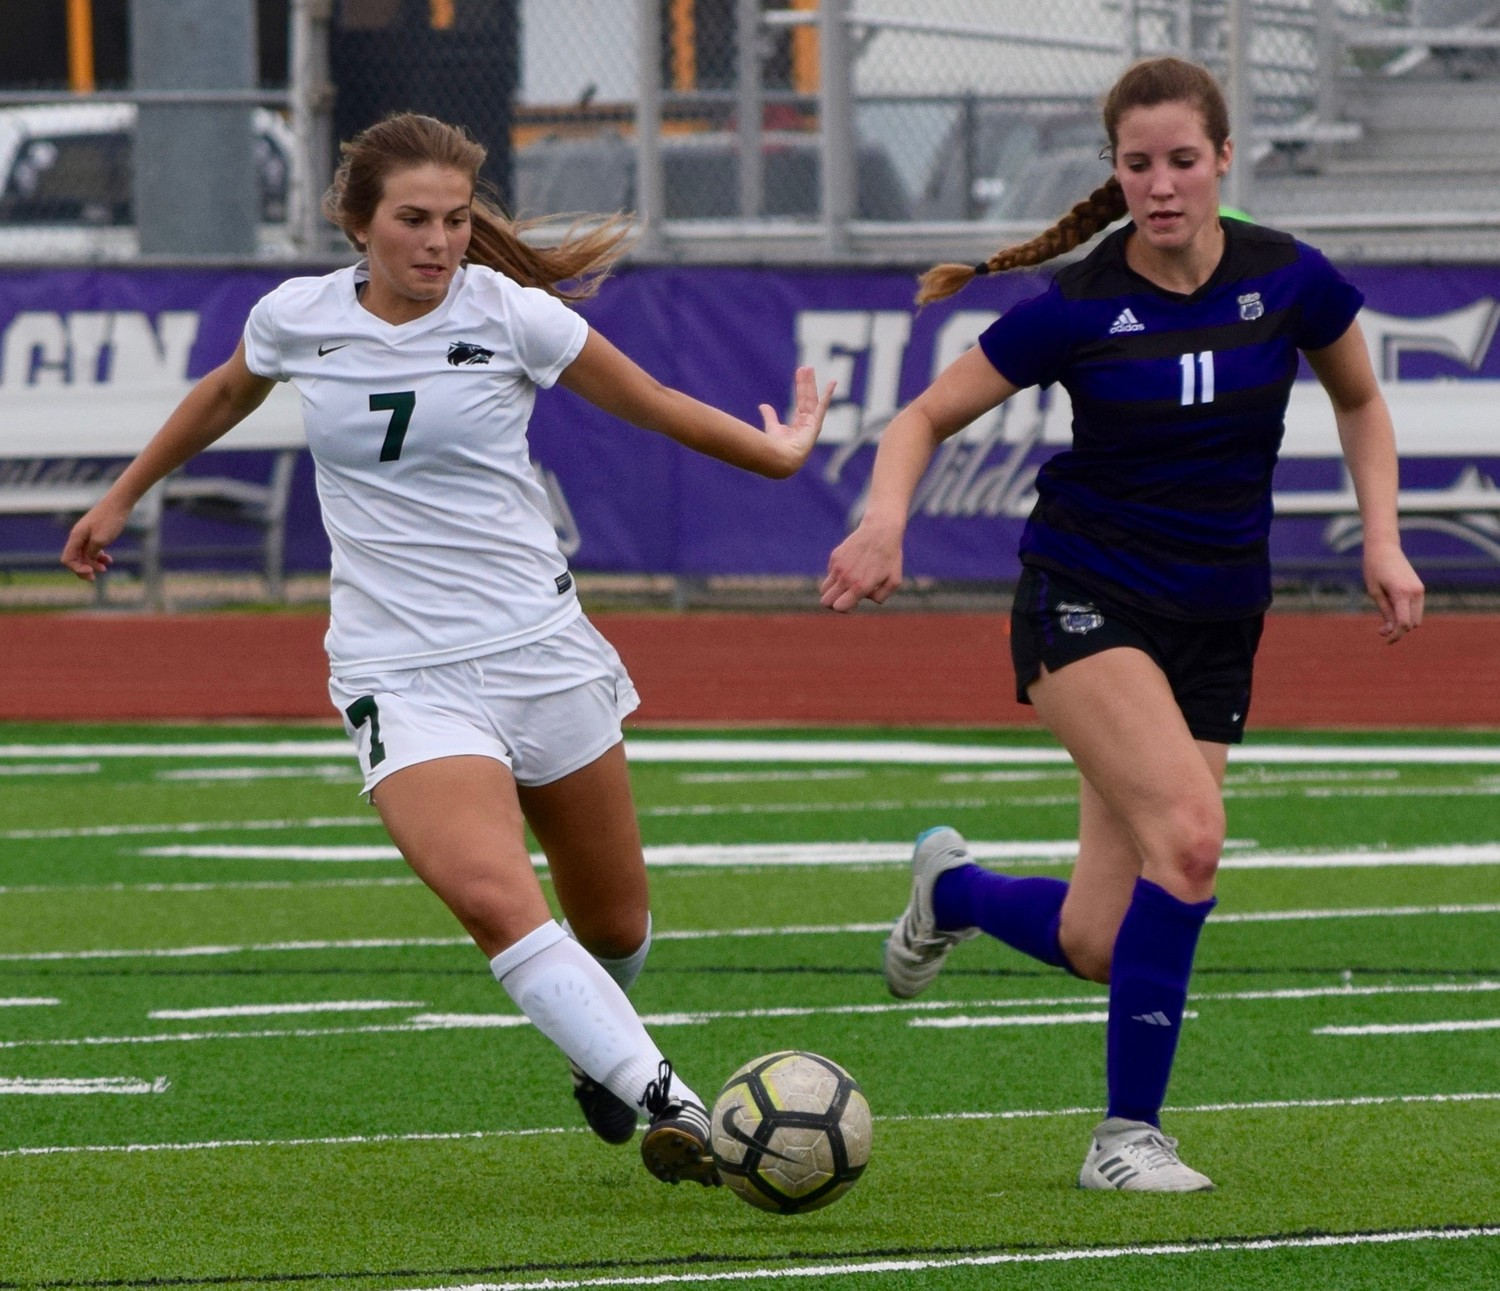 Jewell Resseguie scored two goals and Cedar Park beat College Station 2-1 in the third round of the playoffs Tuesday night.